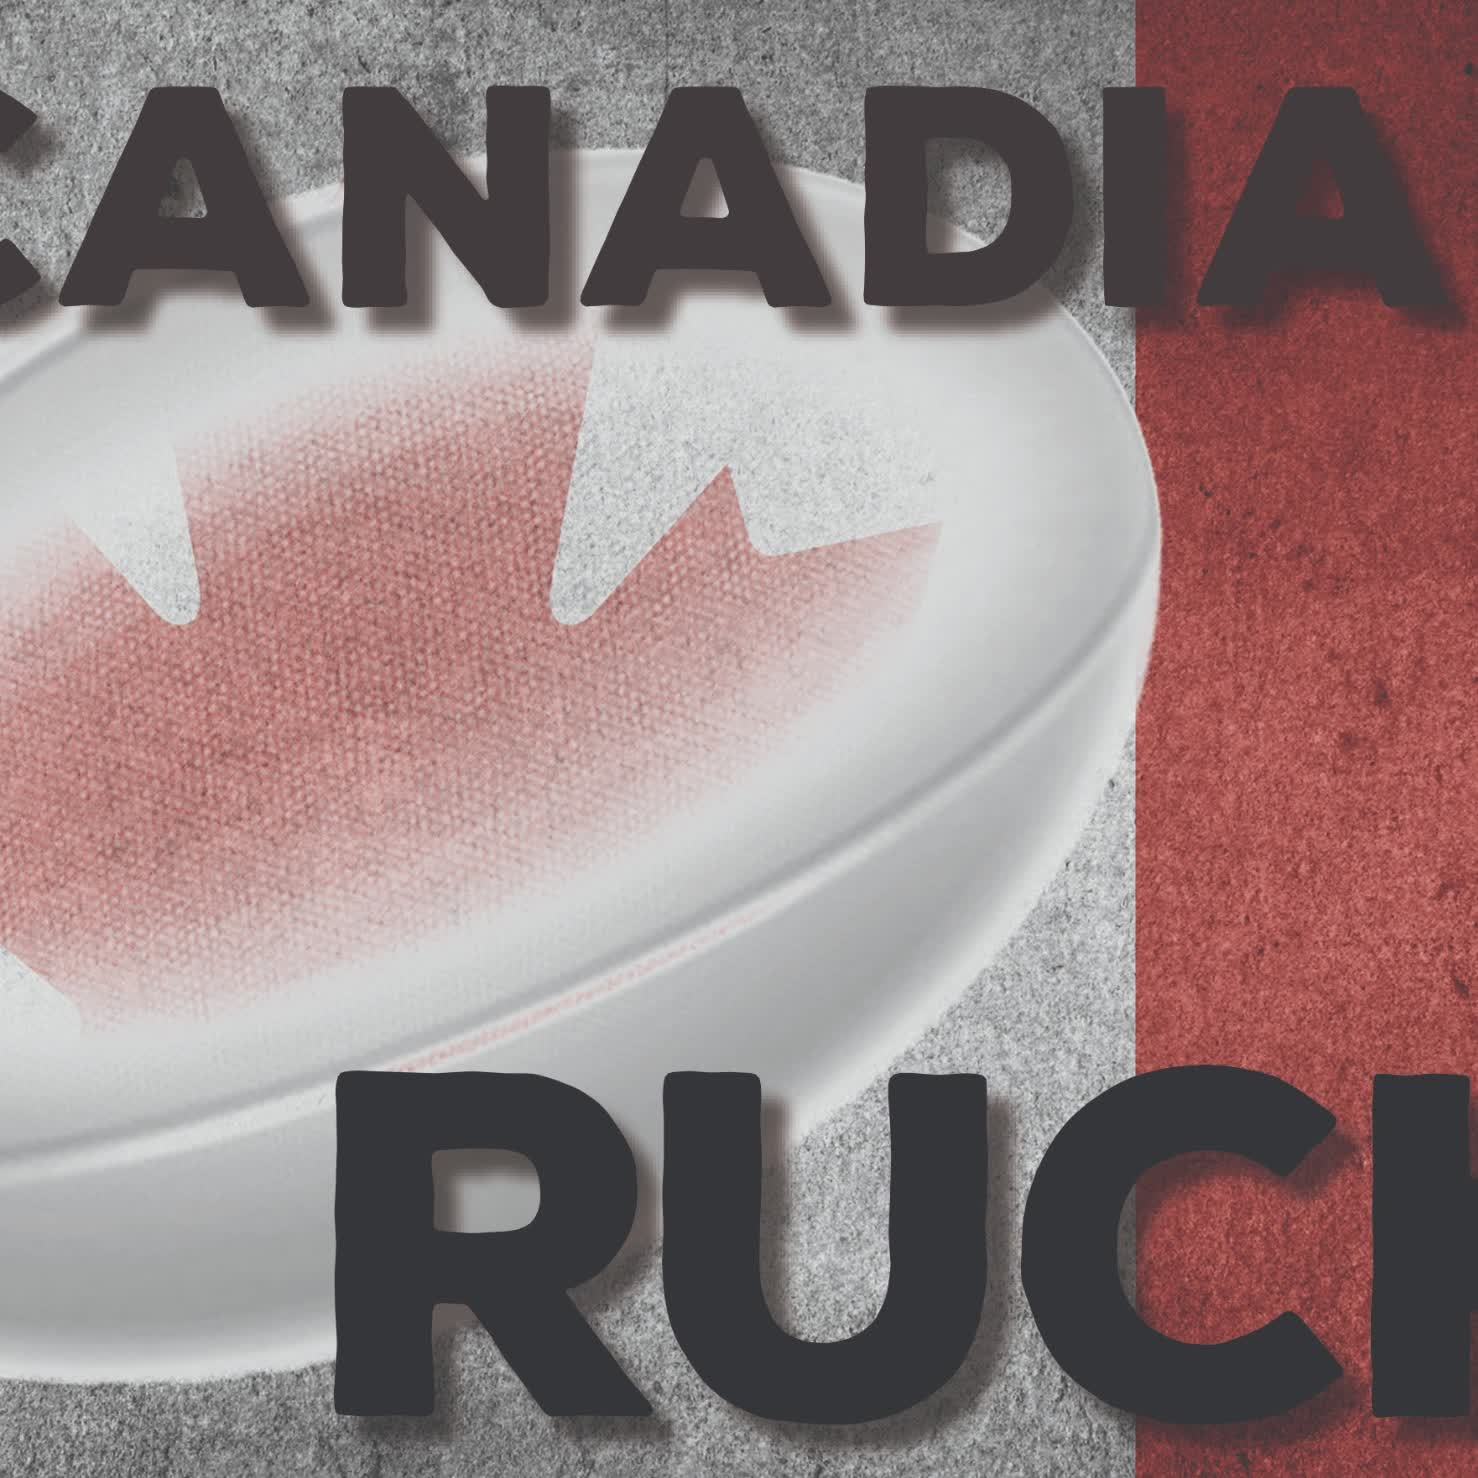 The Canadian Ruck